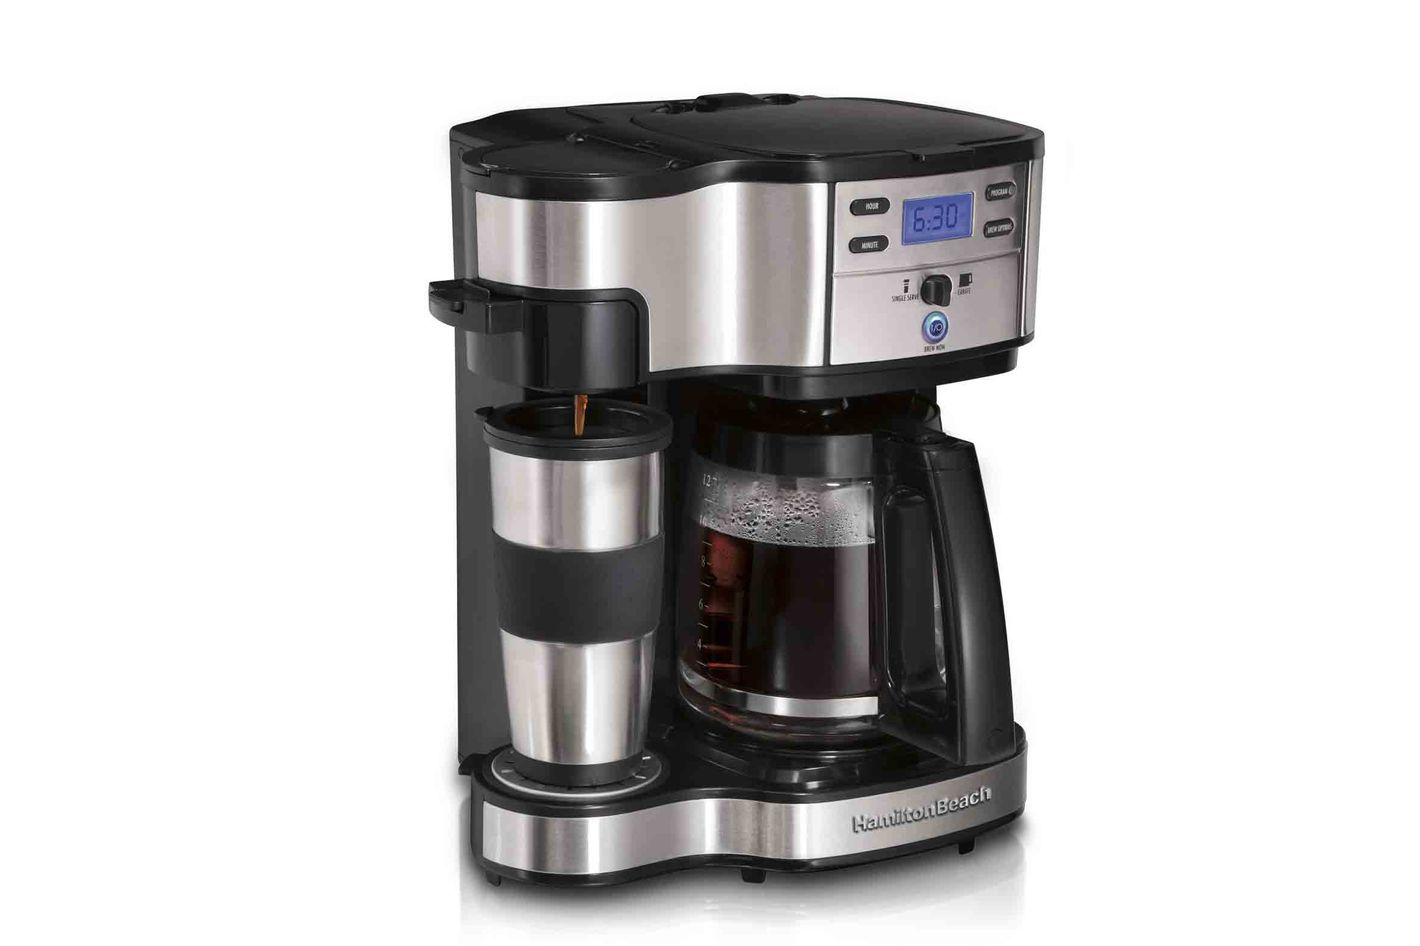 Best Coffee Maker One Cup : The 11 Best Coffee Makers and Machines 2018